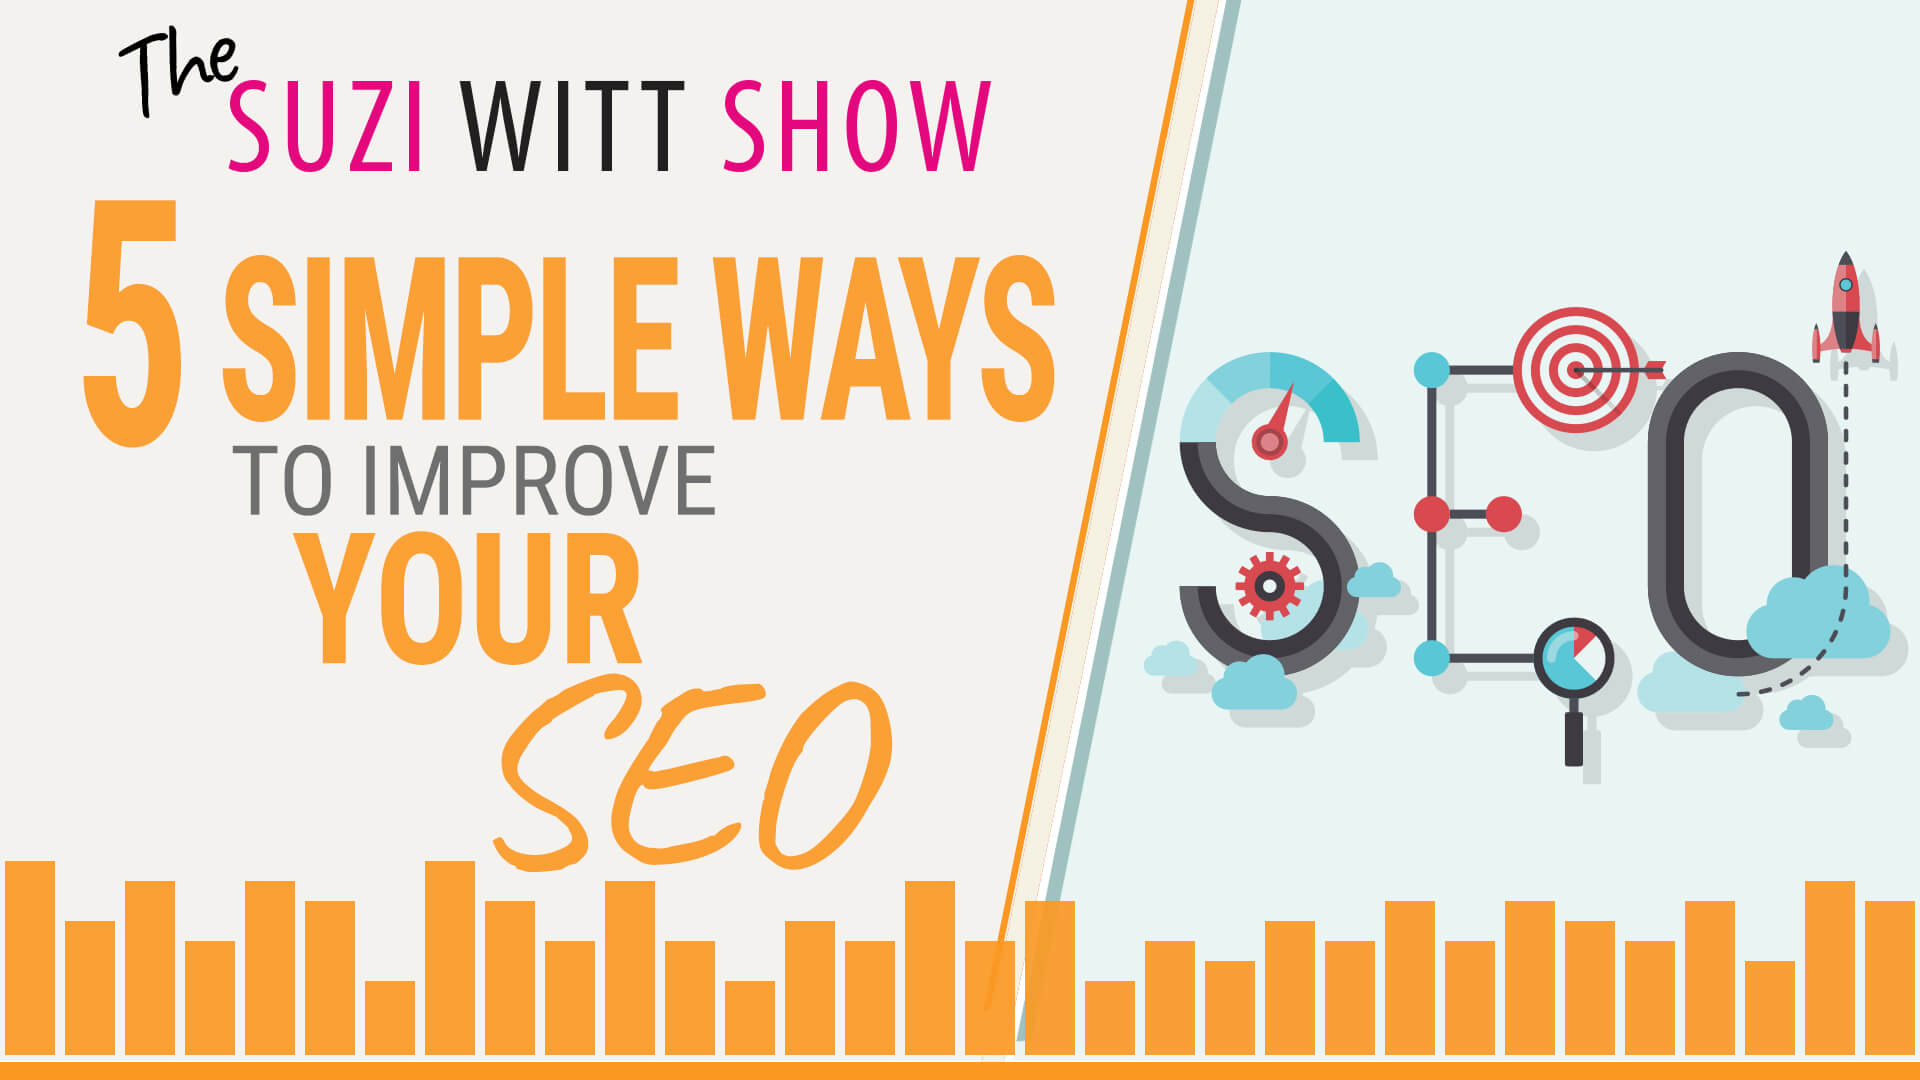 5 Simple Ways to Improve Your SEO